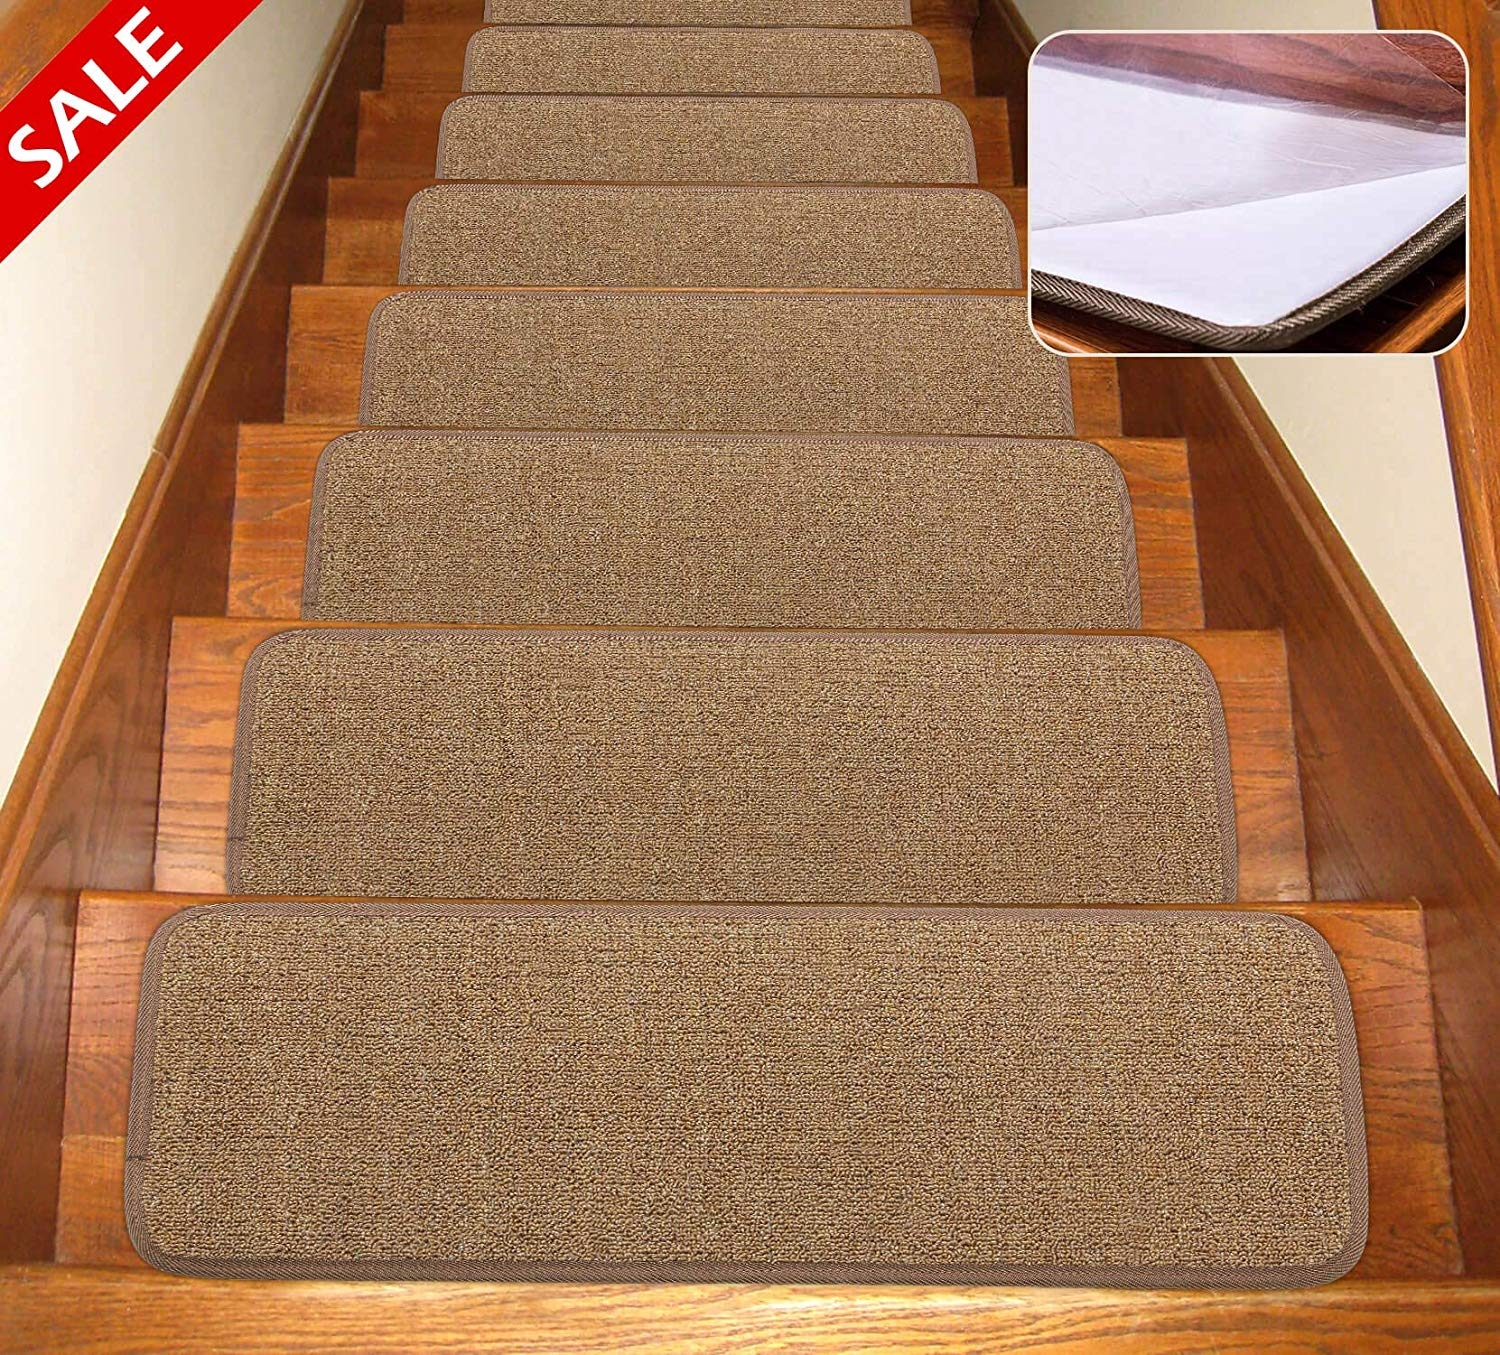 Self Adhesive Non Slip Carpet Stair Treads Canine Arthritis | Berber Carpet For Stairs | Decorative | Waterfall Stair | Sophisticated | Durable | Master Bedroom